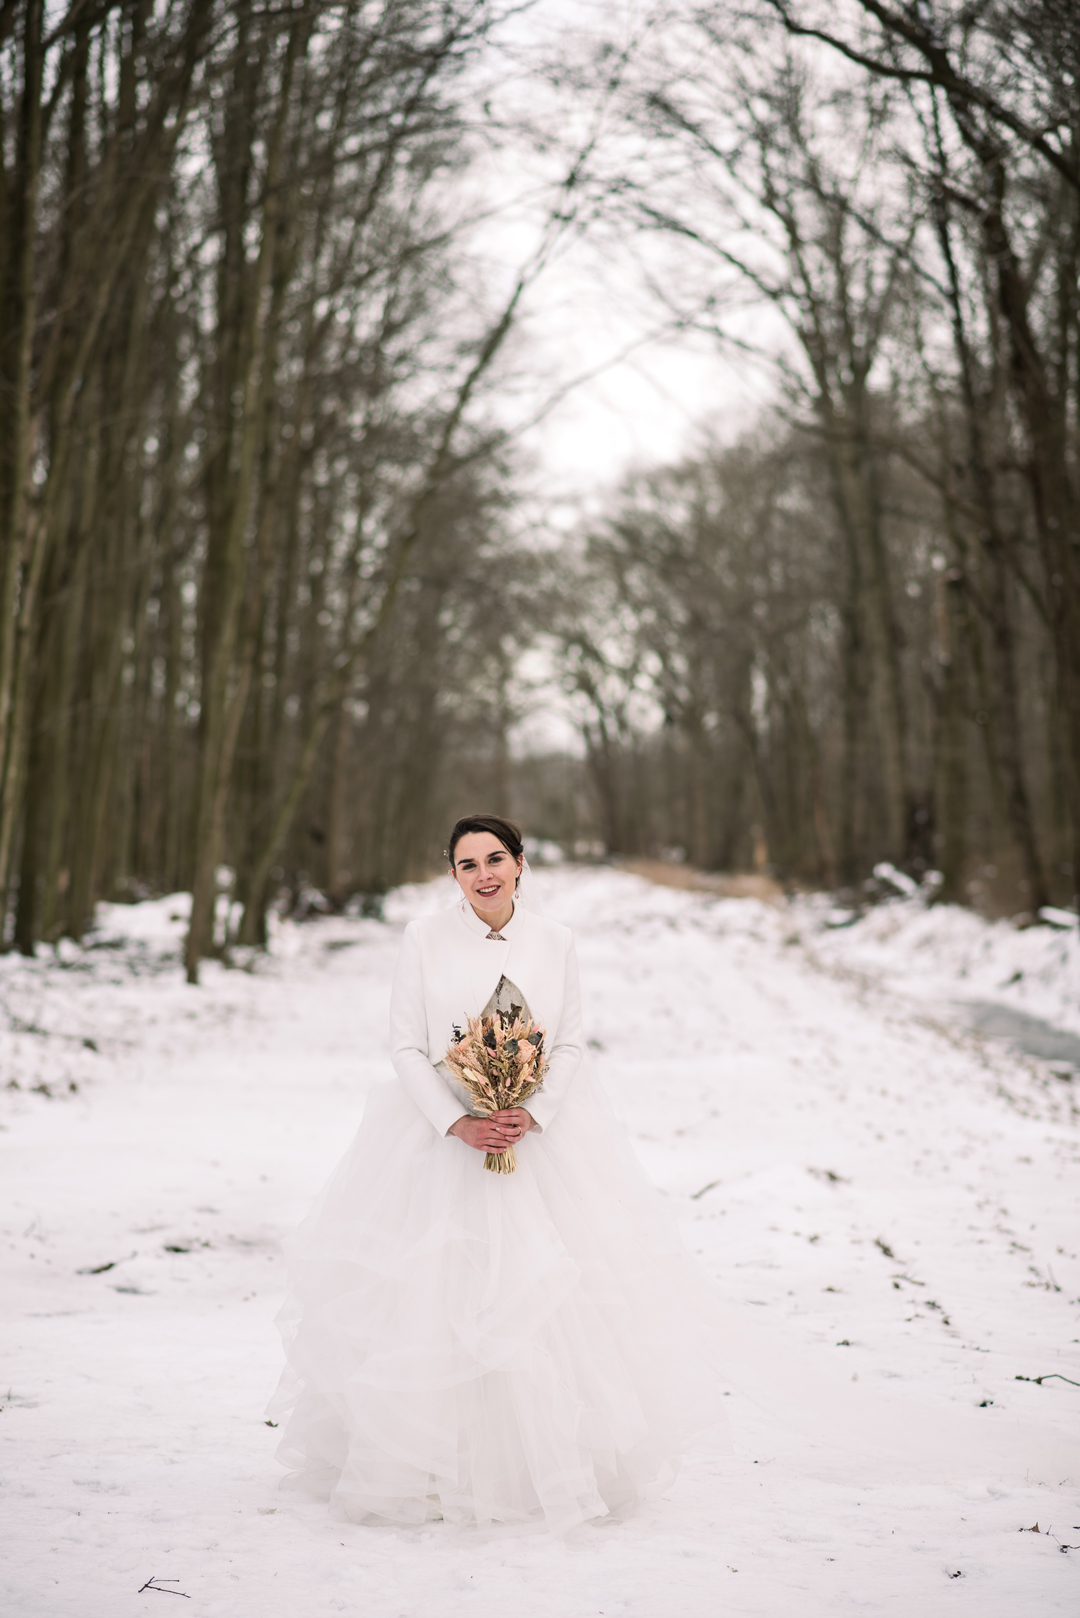 Prancing Deer Winter Wedding